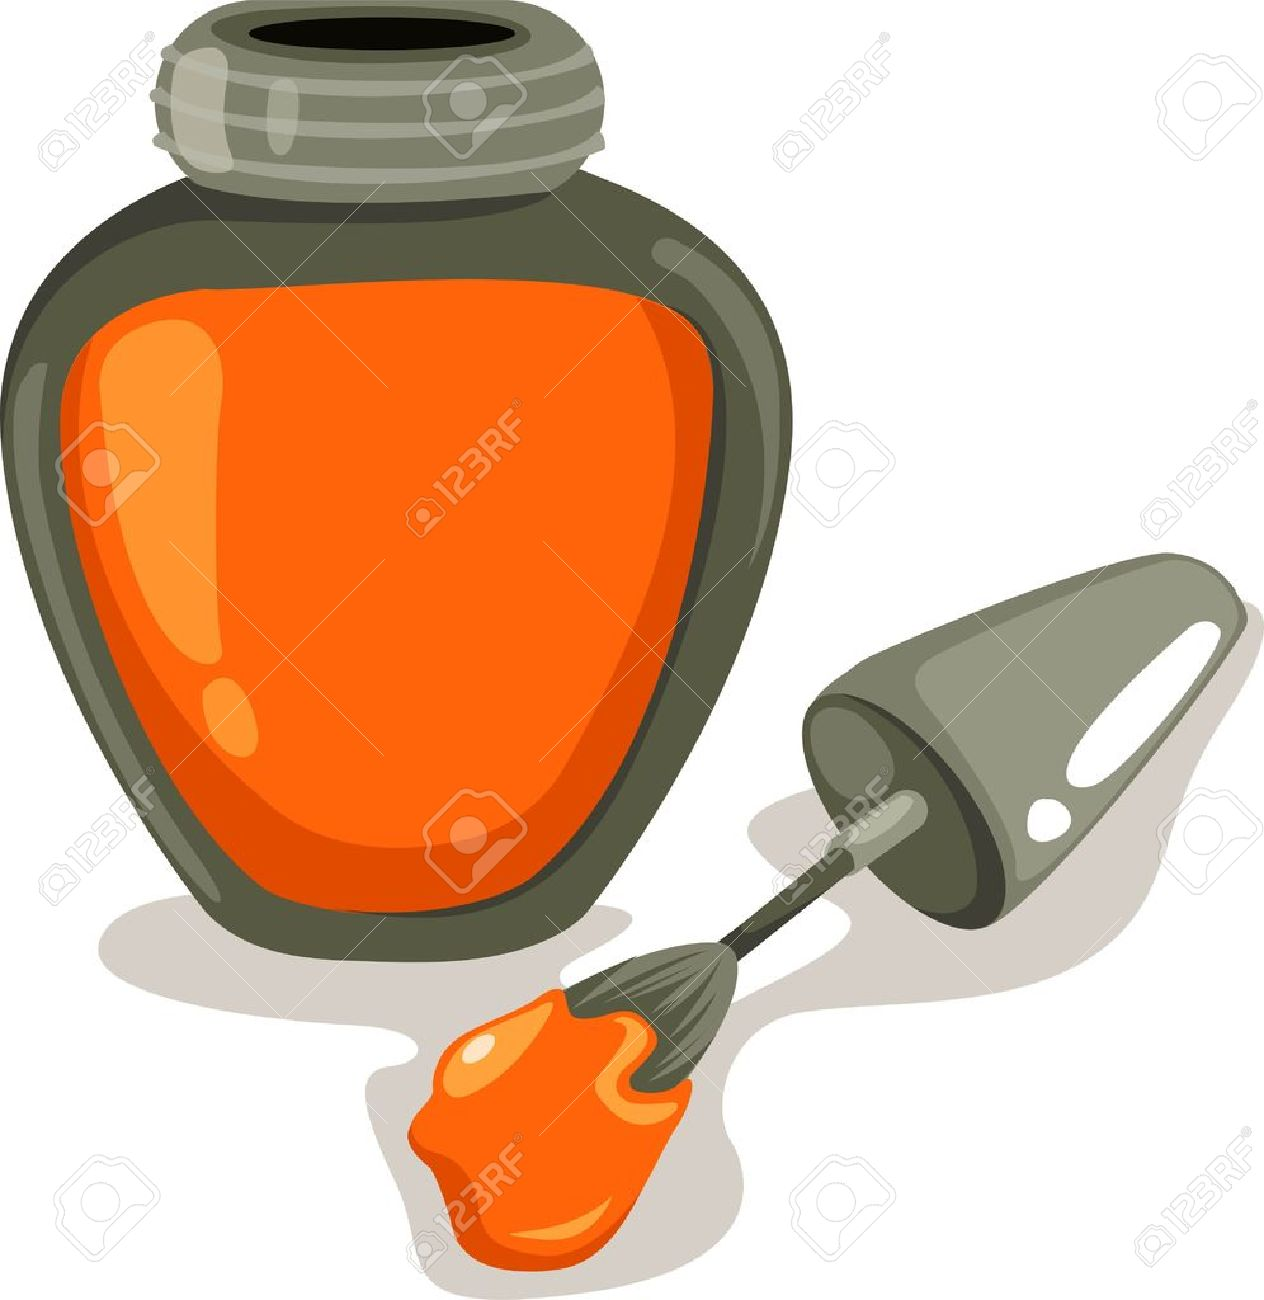 13,239 Varnish Stock Vector Illustration And Royalty Free Varnish.